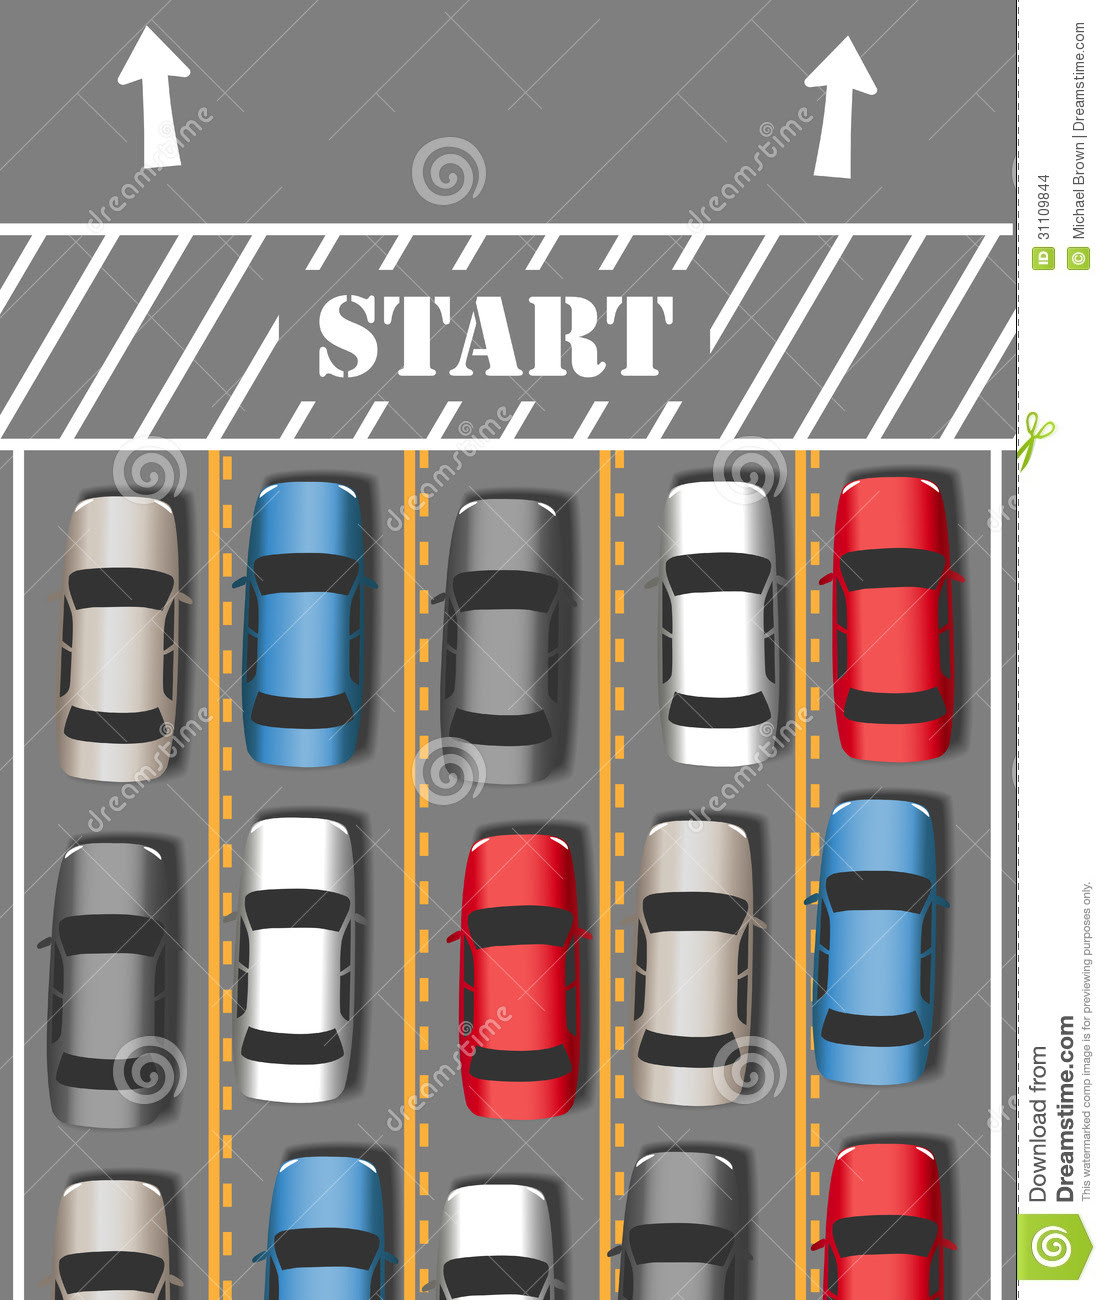 Cars Start Travel Traffic Trip Stock Images - Image: 31109844